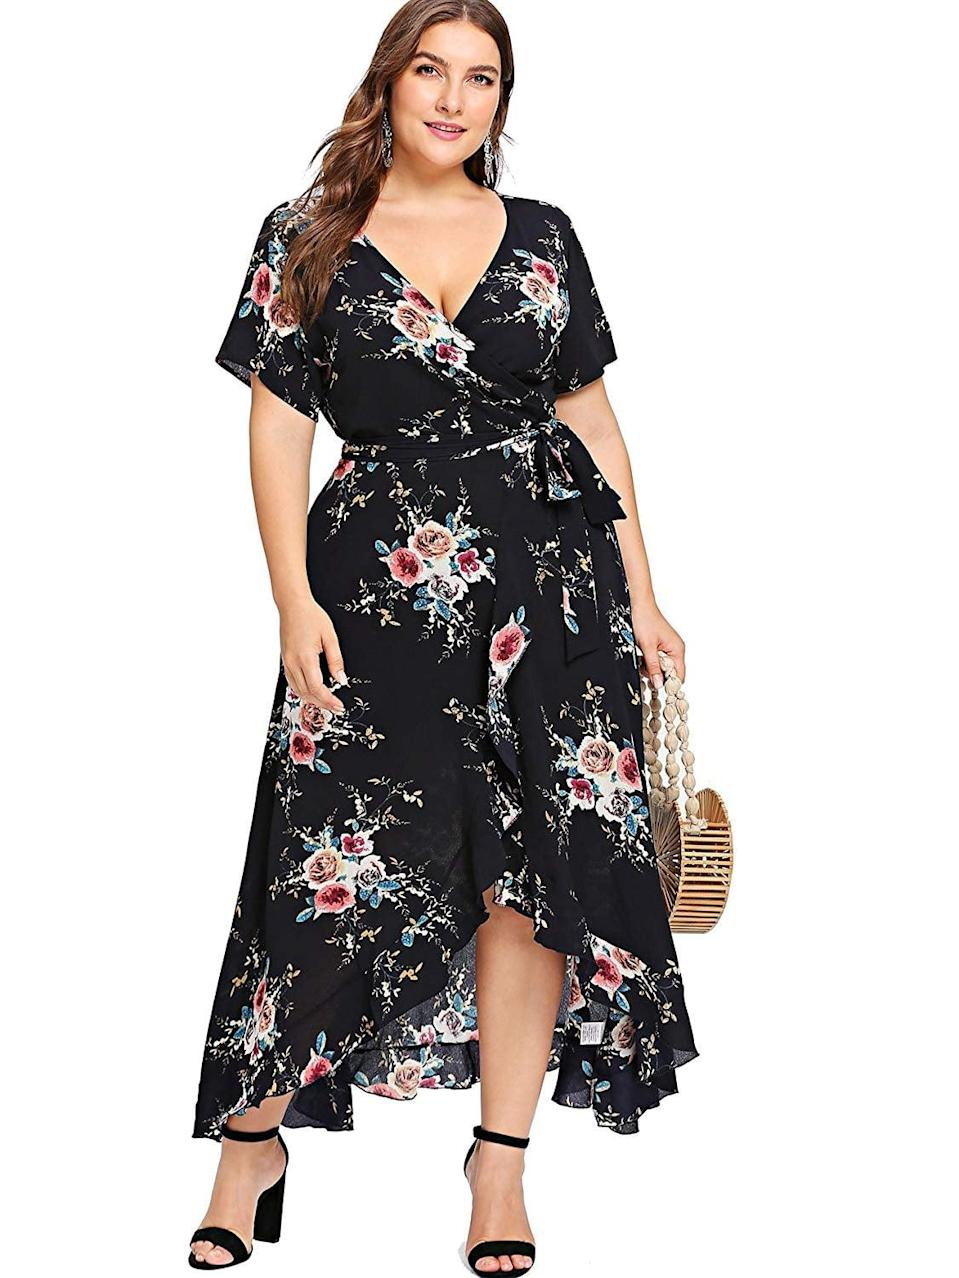 "<p>This <a href=""https://www.popsugar.com/buy/Milumia-Wrap-V-Neck-Dress-543799?p_name=Milumia%20Wrap%20V-Neck%20Dress&retailer=amazon.com&pid=543799&price=36&evar1=fab%3Aus&evar9=44662359&evar98=https%3A%2F%2Fwww.popsugar.com%2Ffashion%2Fphoto-gallery%2F44662359%2Fimage%2F47293562%2FMilumia-Wrap-V-Neck-Dress&list1=shopping%2Camazon%2Cdresses%2Cspring%2Cflorals%2Cspring%20fashion&prop13=mobile&pdata=1"" class=""link rapid-noclick-resp"" rel=""nofollow noopener"" target=""_blank"" data-ylk=""slk:Milumia Wrap V-Neck Dress"">Milumia Wrap V-Neck Dress</a> ($36) will be great for Spring. It's also the perfect wedding-guest dress.</p>"